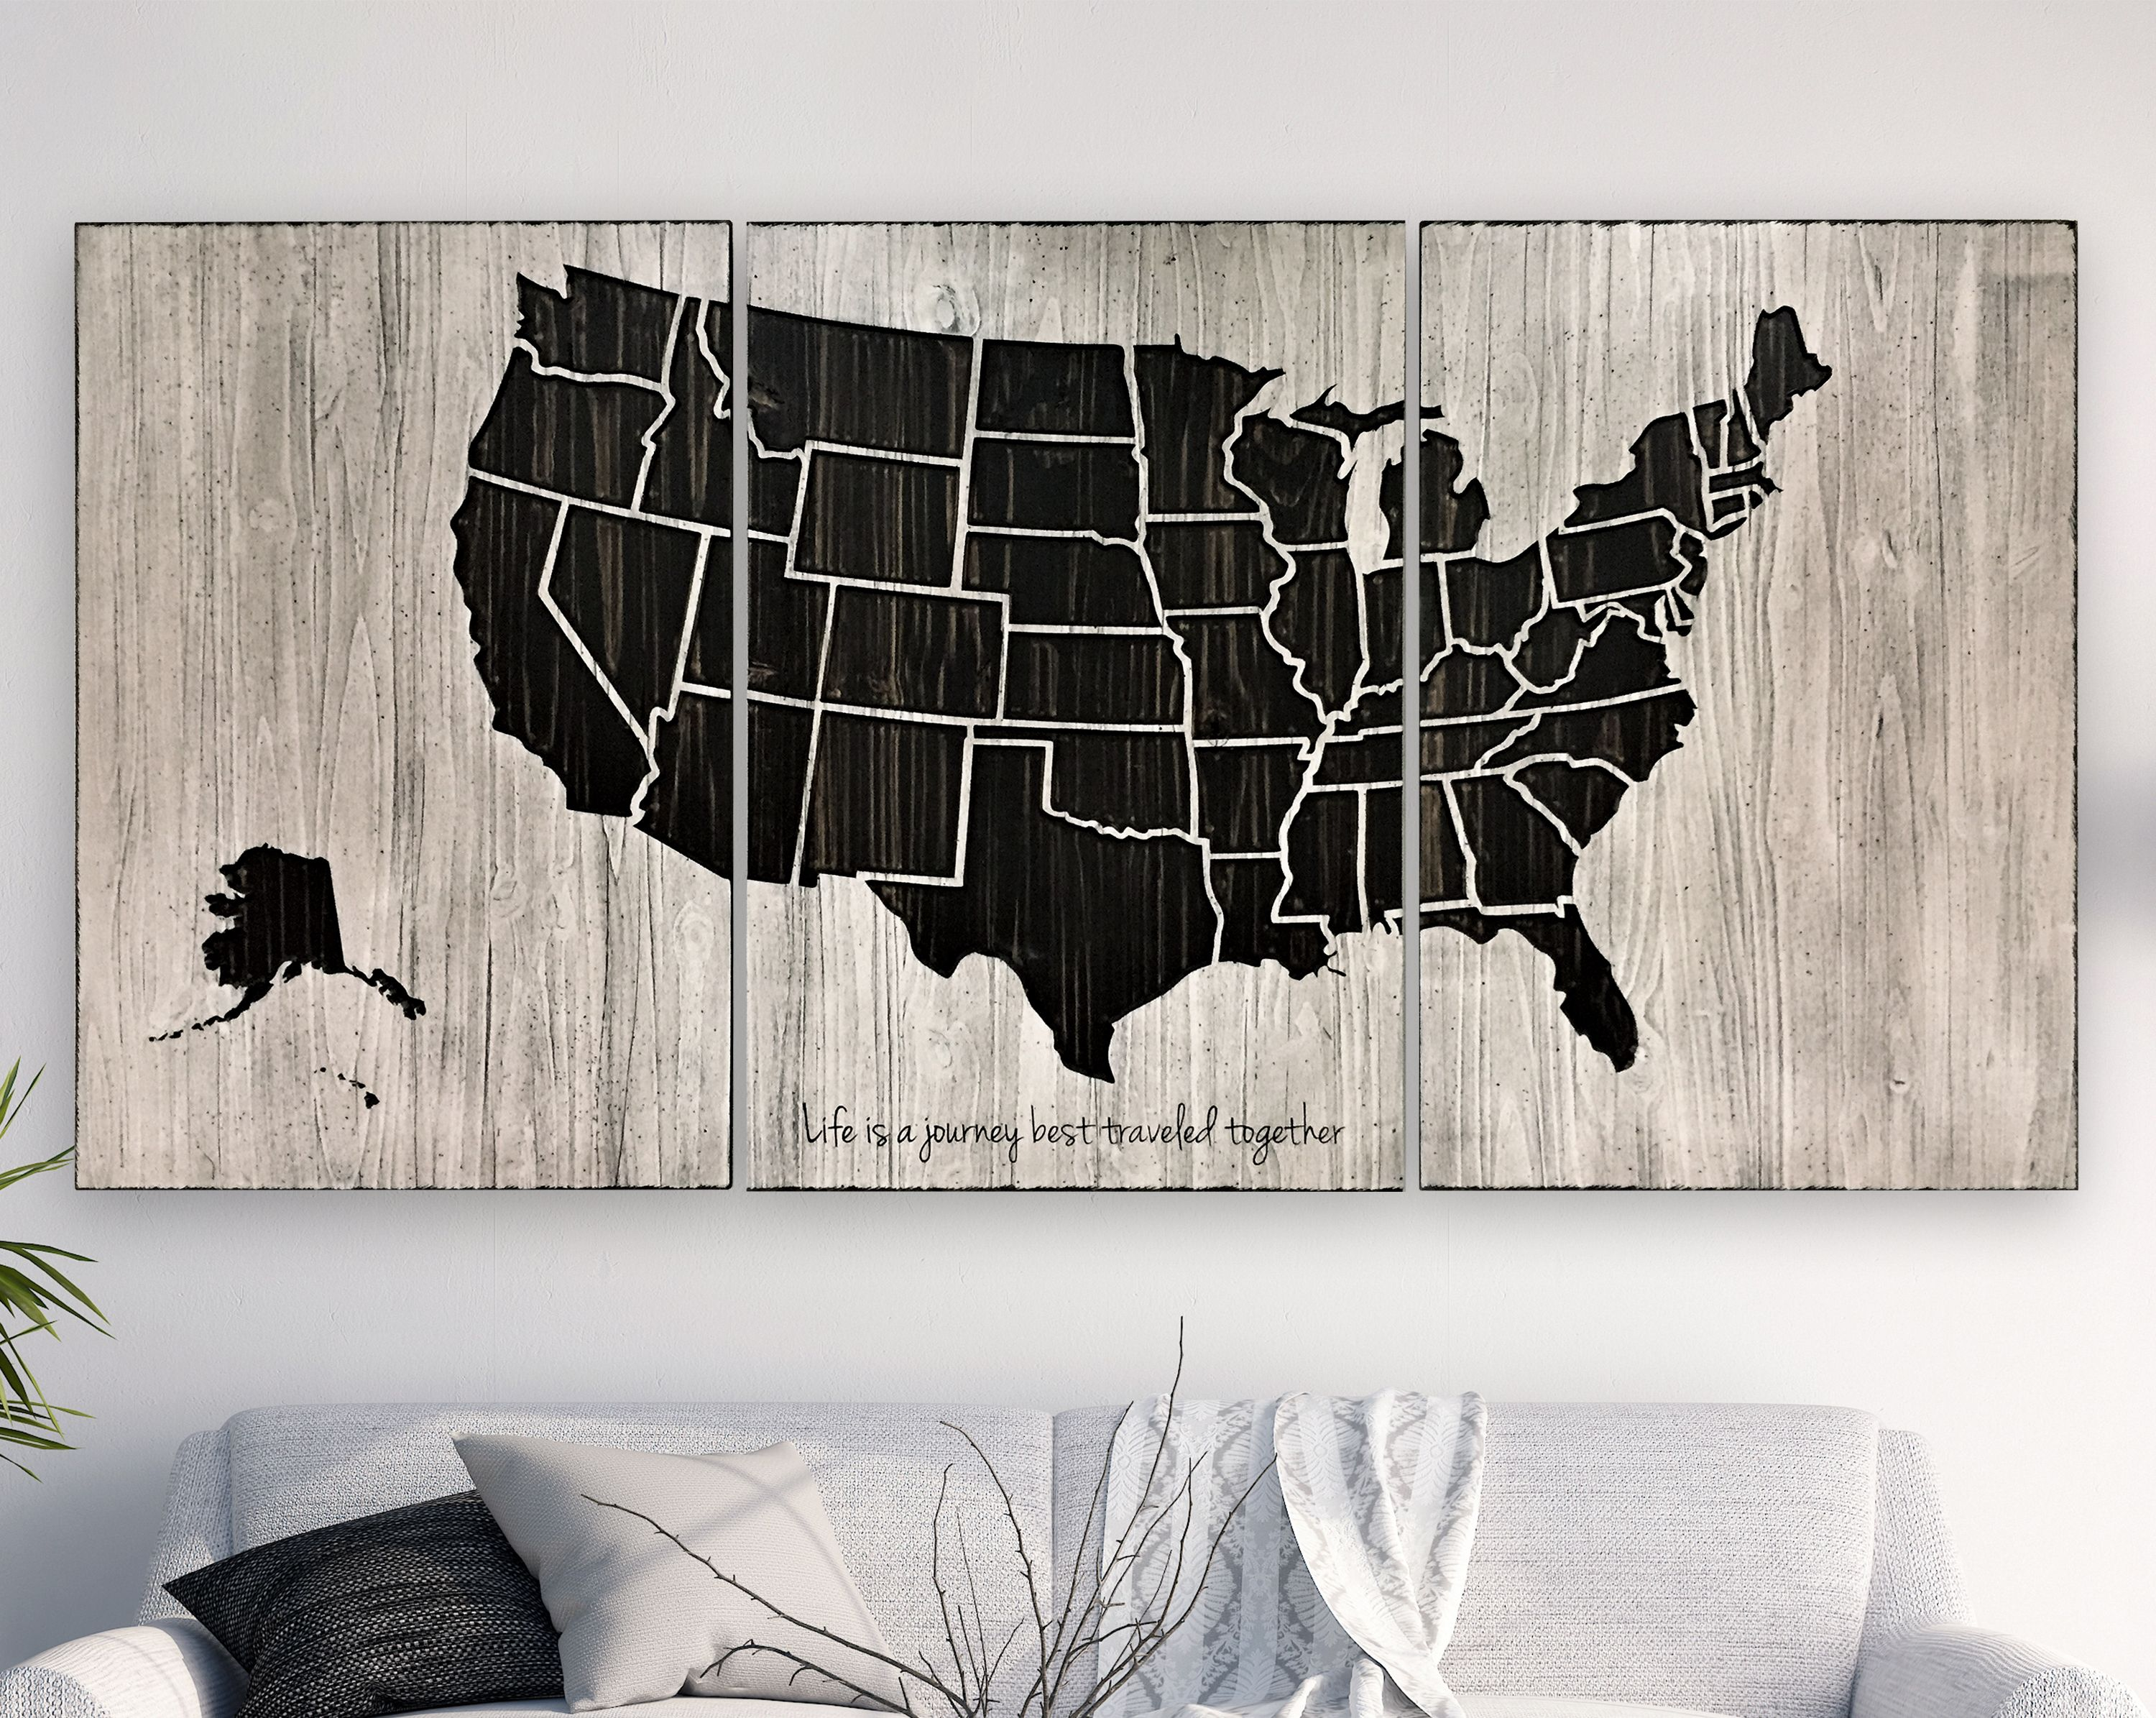 Howdy owl panel carved us map great anniversary or wedding gift